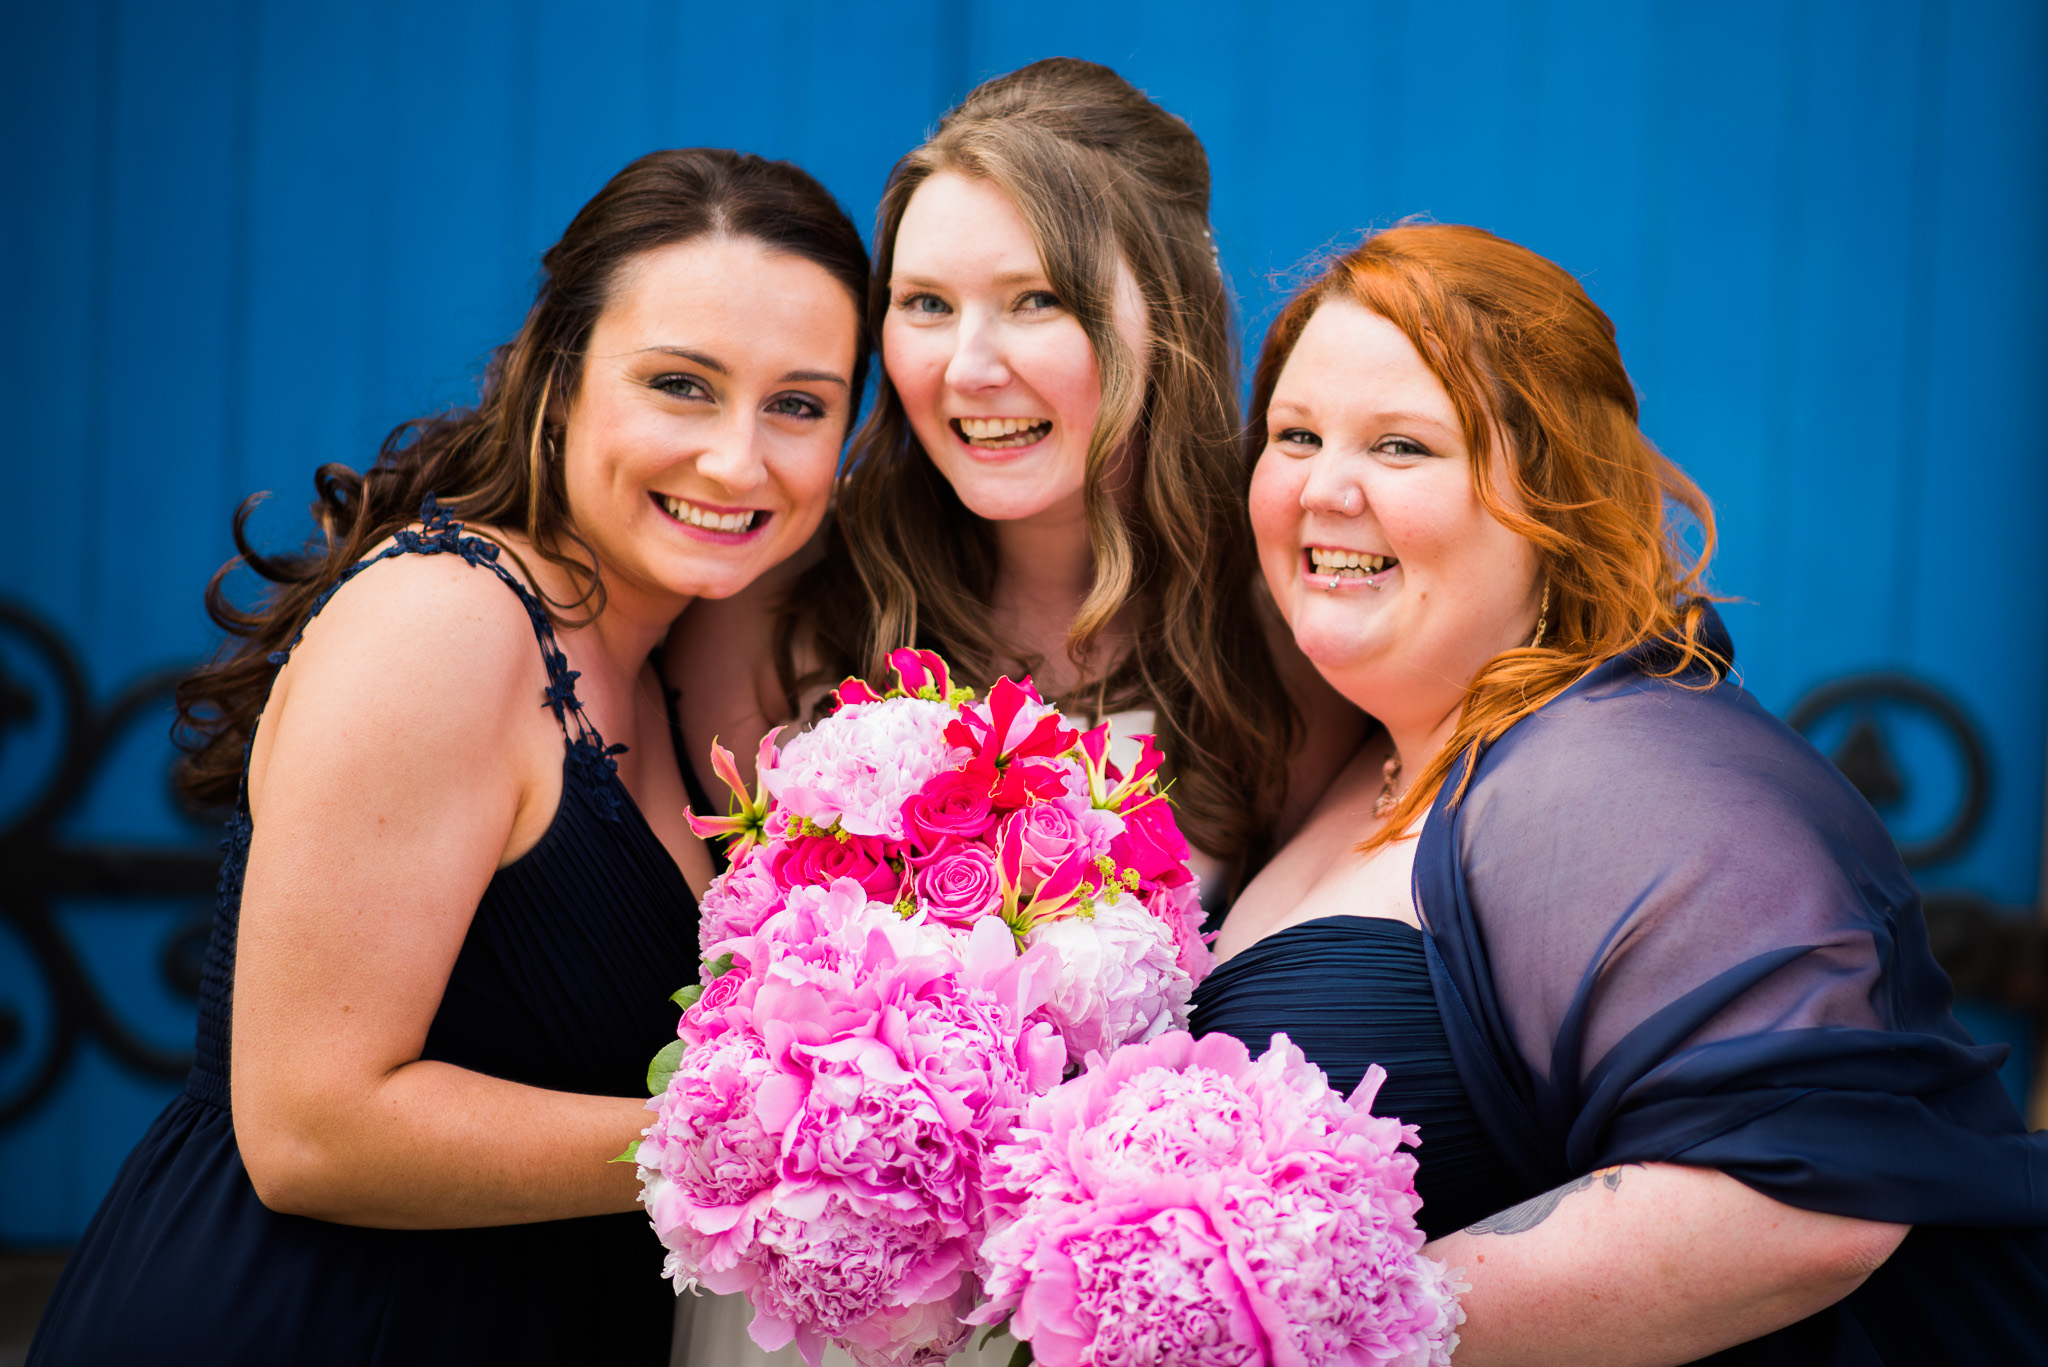 Bride & Bridesmaids Killearn Wedding